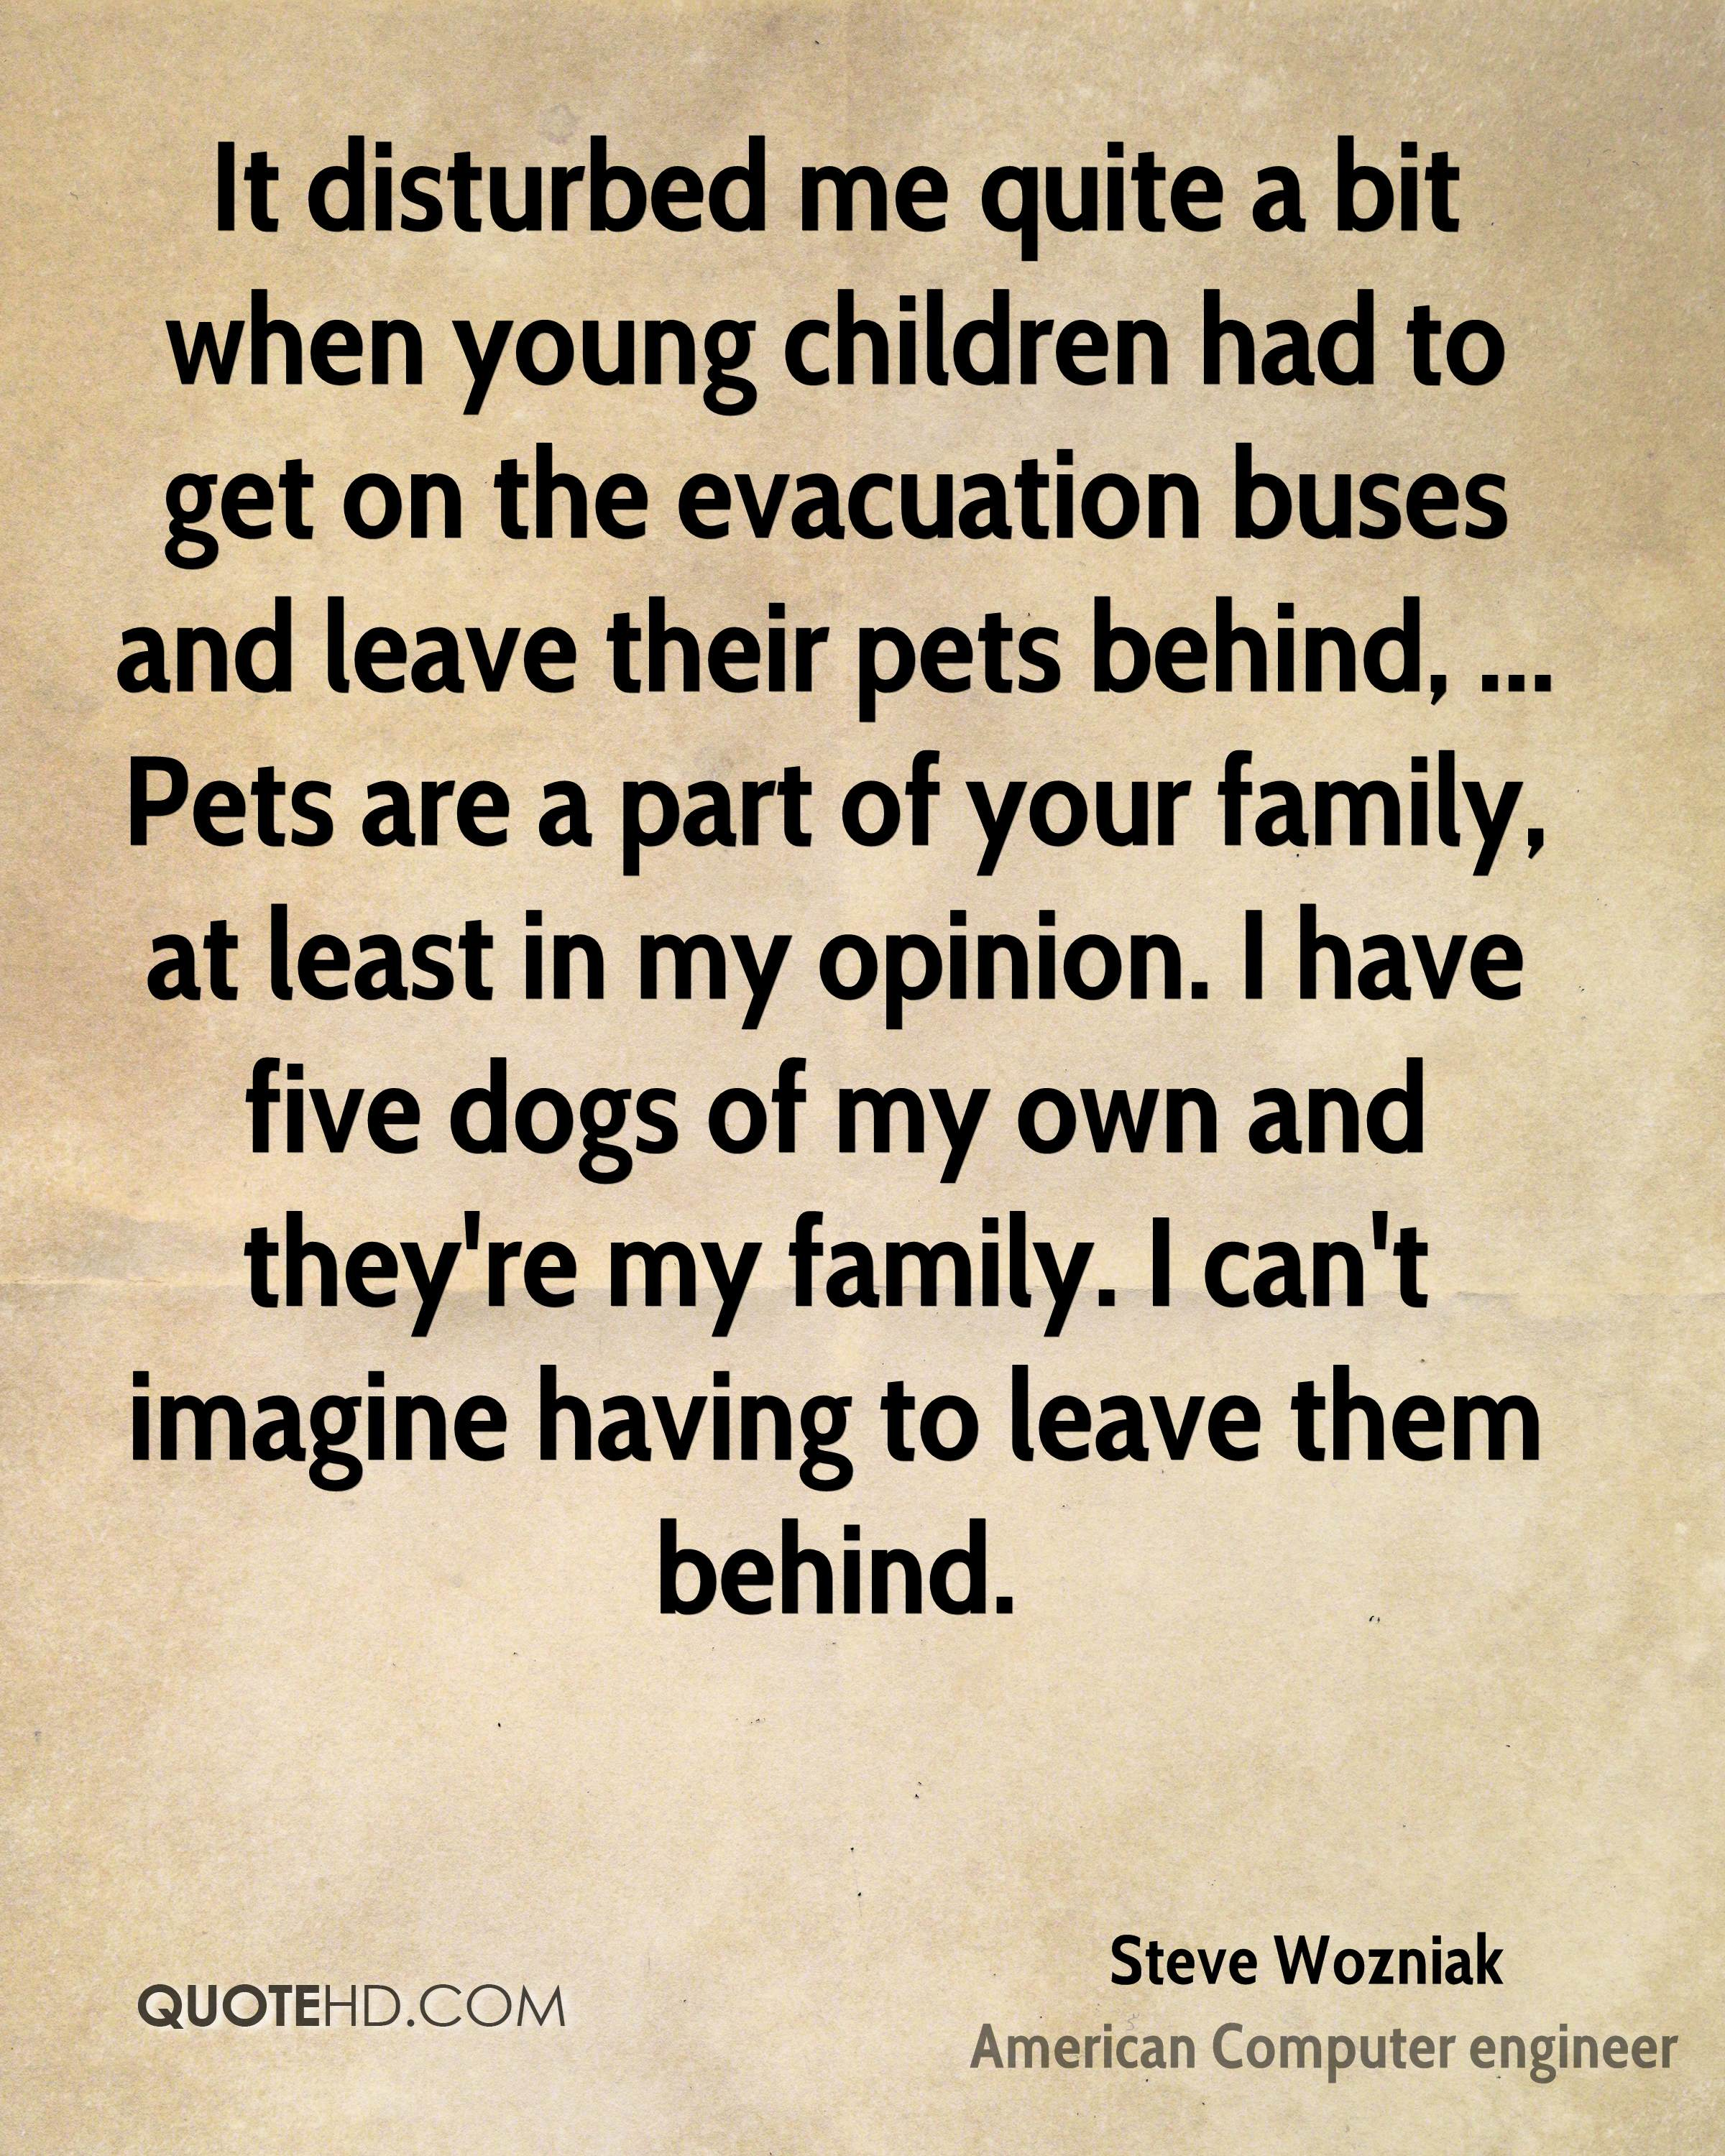 It disturbed me quite a bit when young children had to get on the evacuation buses and leave their pets behind, ... Pets are a part of your family, at least in my opinion. I have five dogs of my own and they're my family. I can't imagine having to leave them behind.